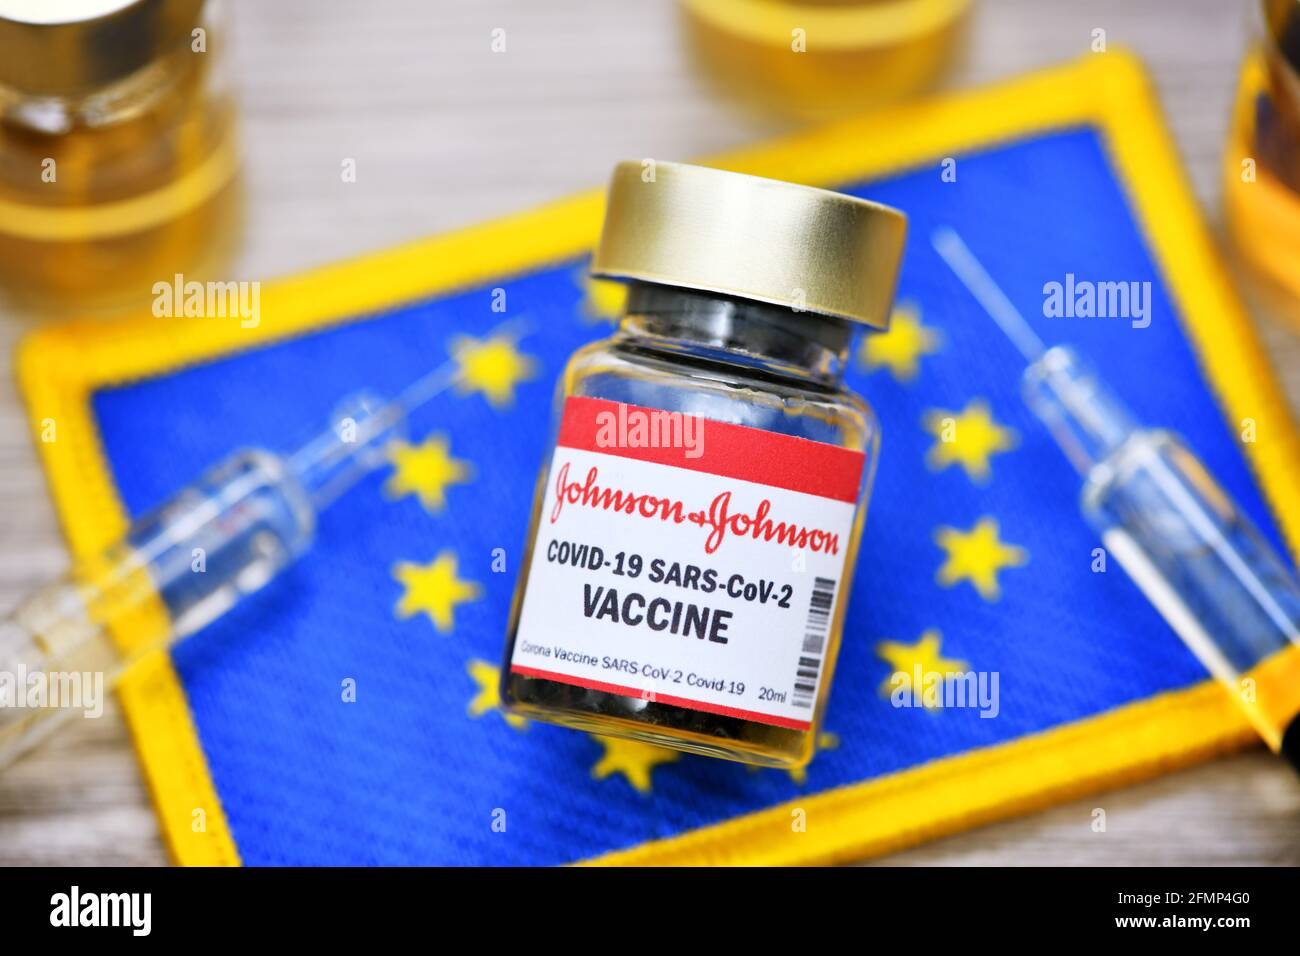 Covid Vaccine Of Johnson And Johnson In Front Of EU Flag, Symbolic Image Stock Photo